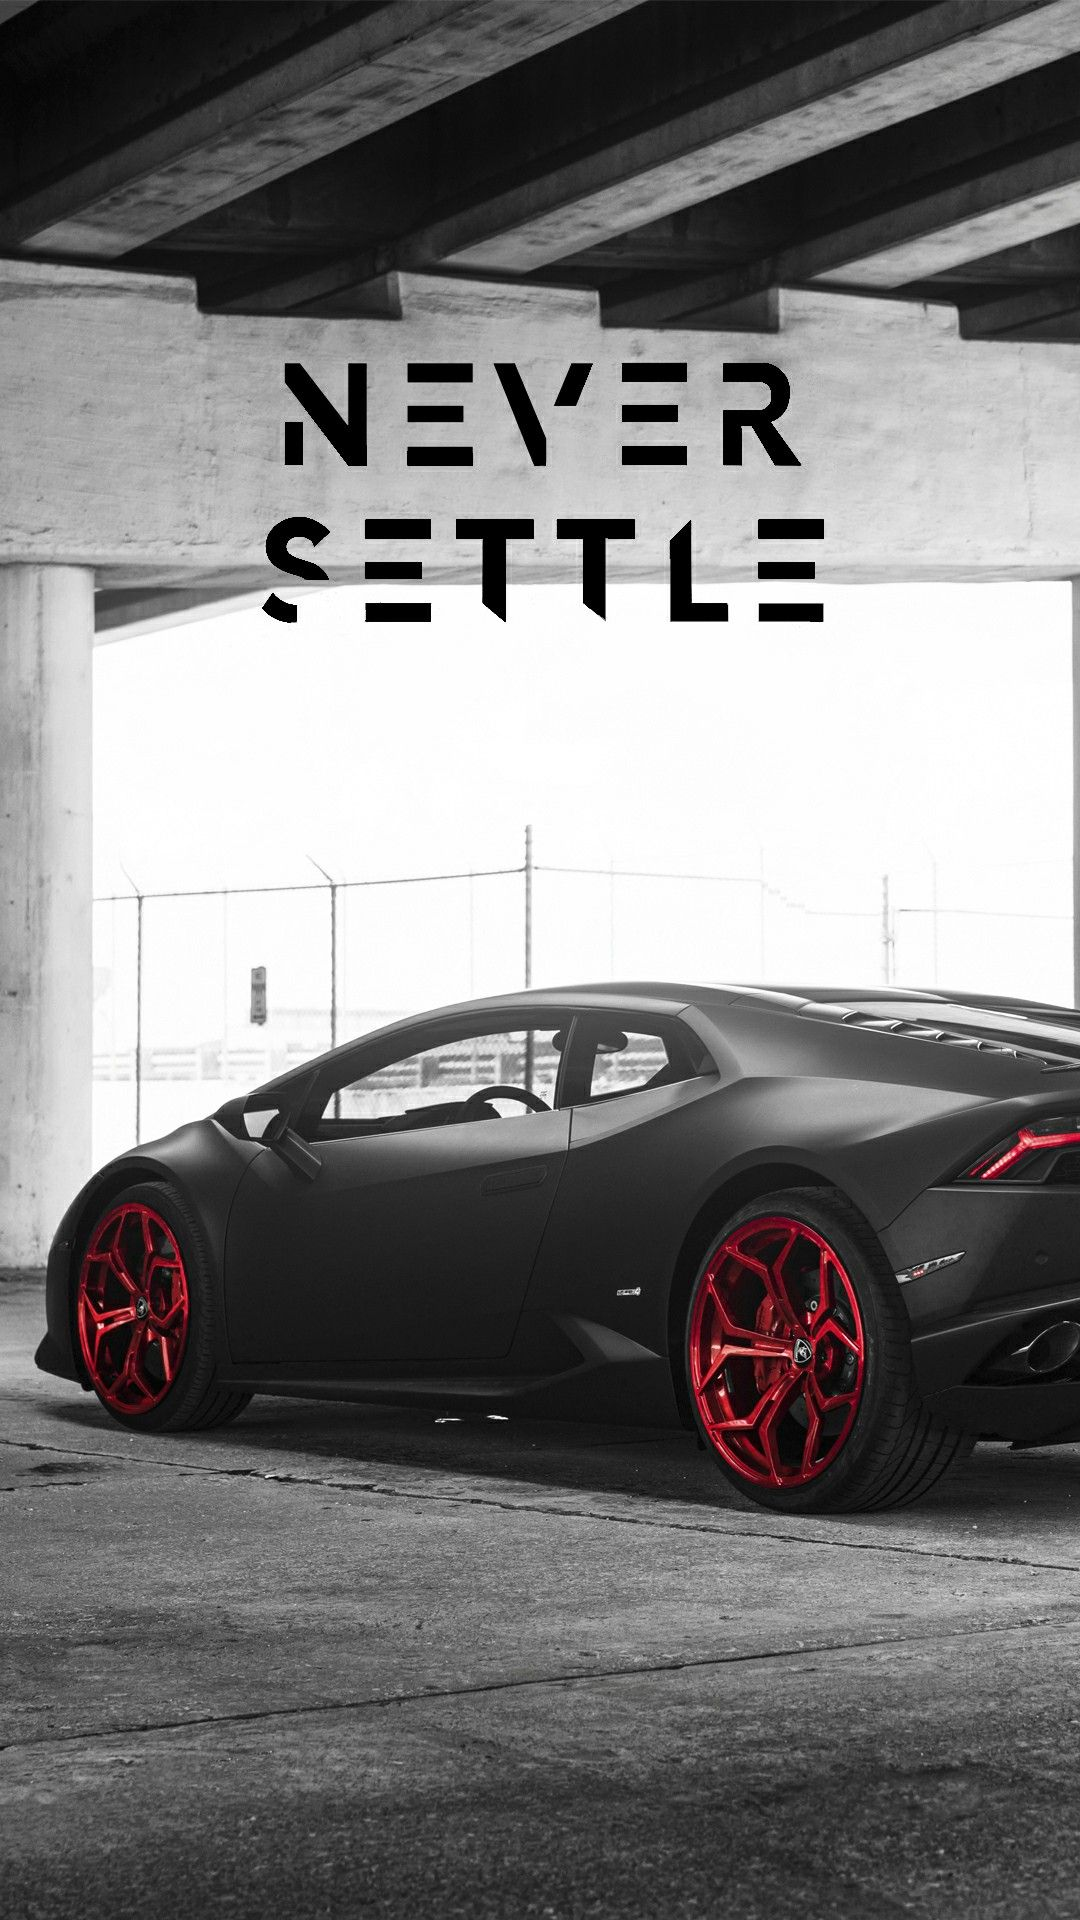 One Plus With Images Car Wallpapers Lamborghini Cars Super Cars